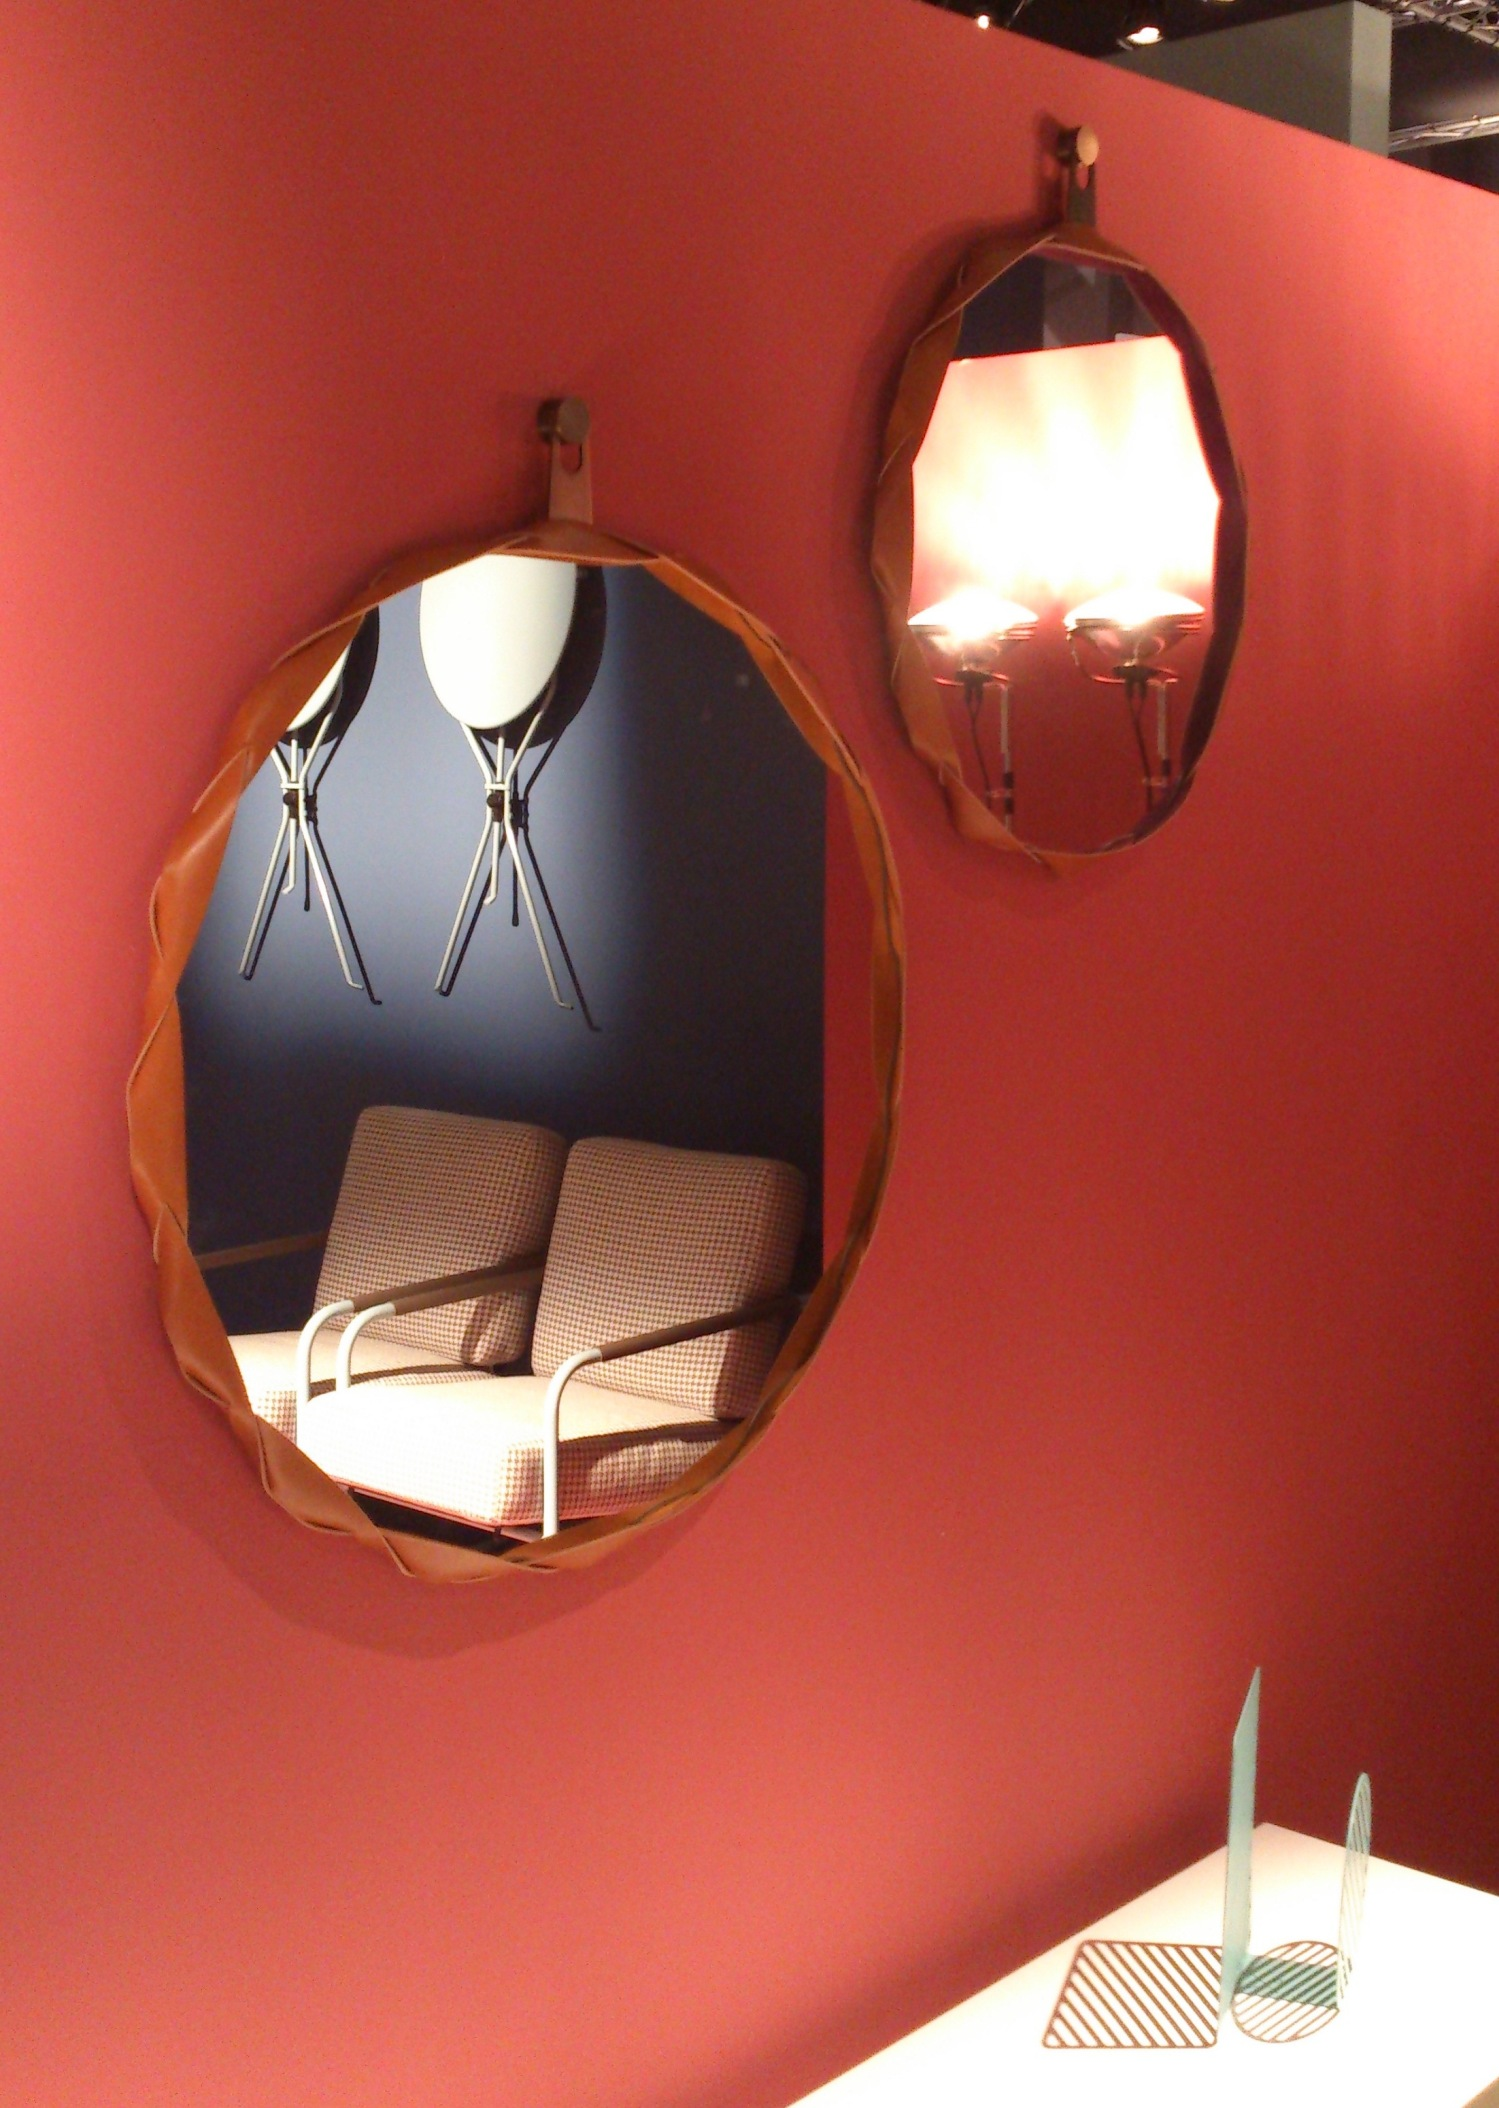 12 zanotta mirrors isaloni salone del mobile 2015 milan targi meblowe w mediolanie interior furniture light fixtures design tendencies trends review